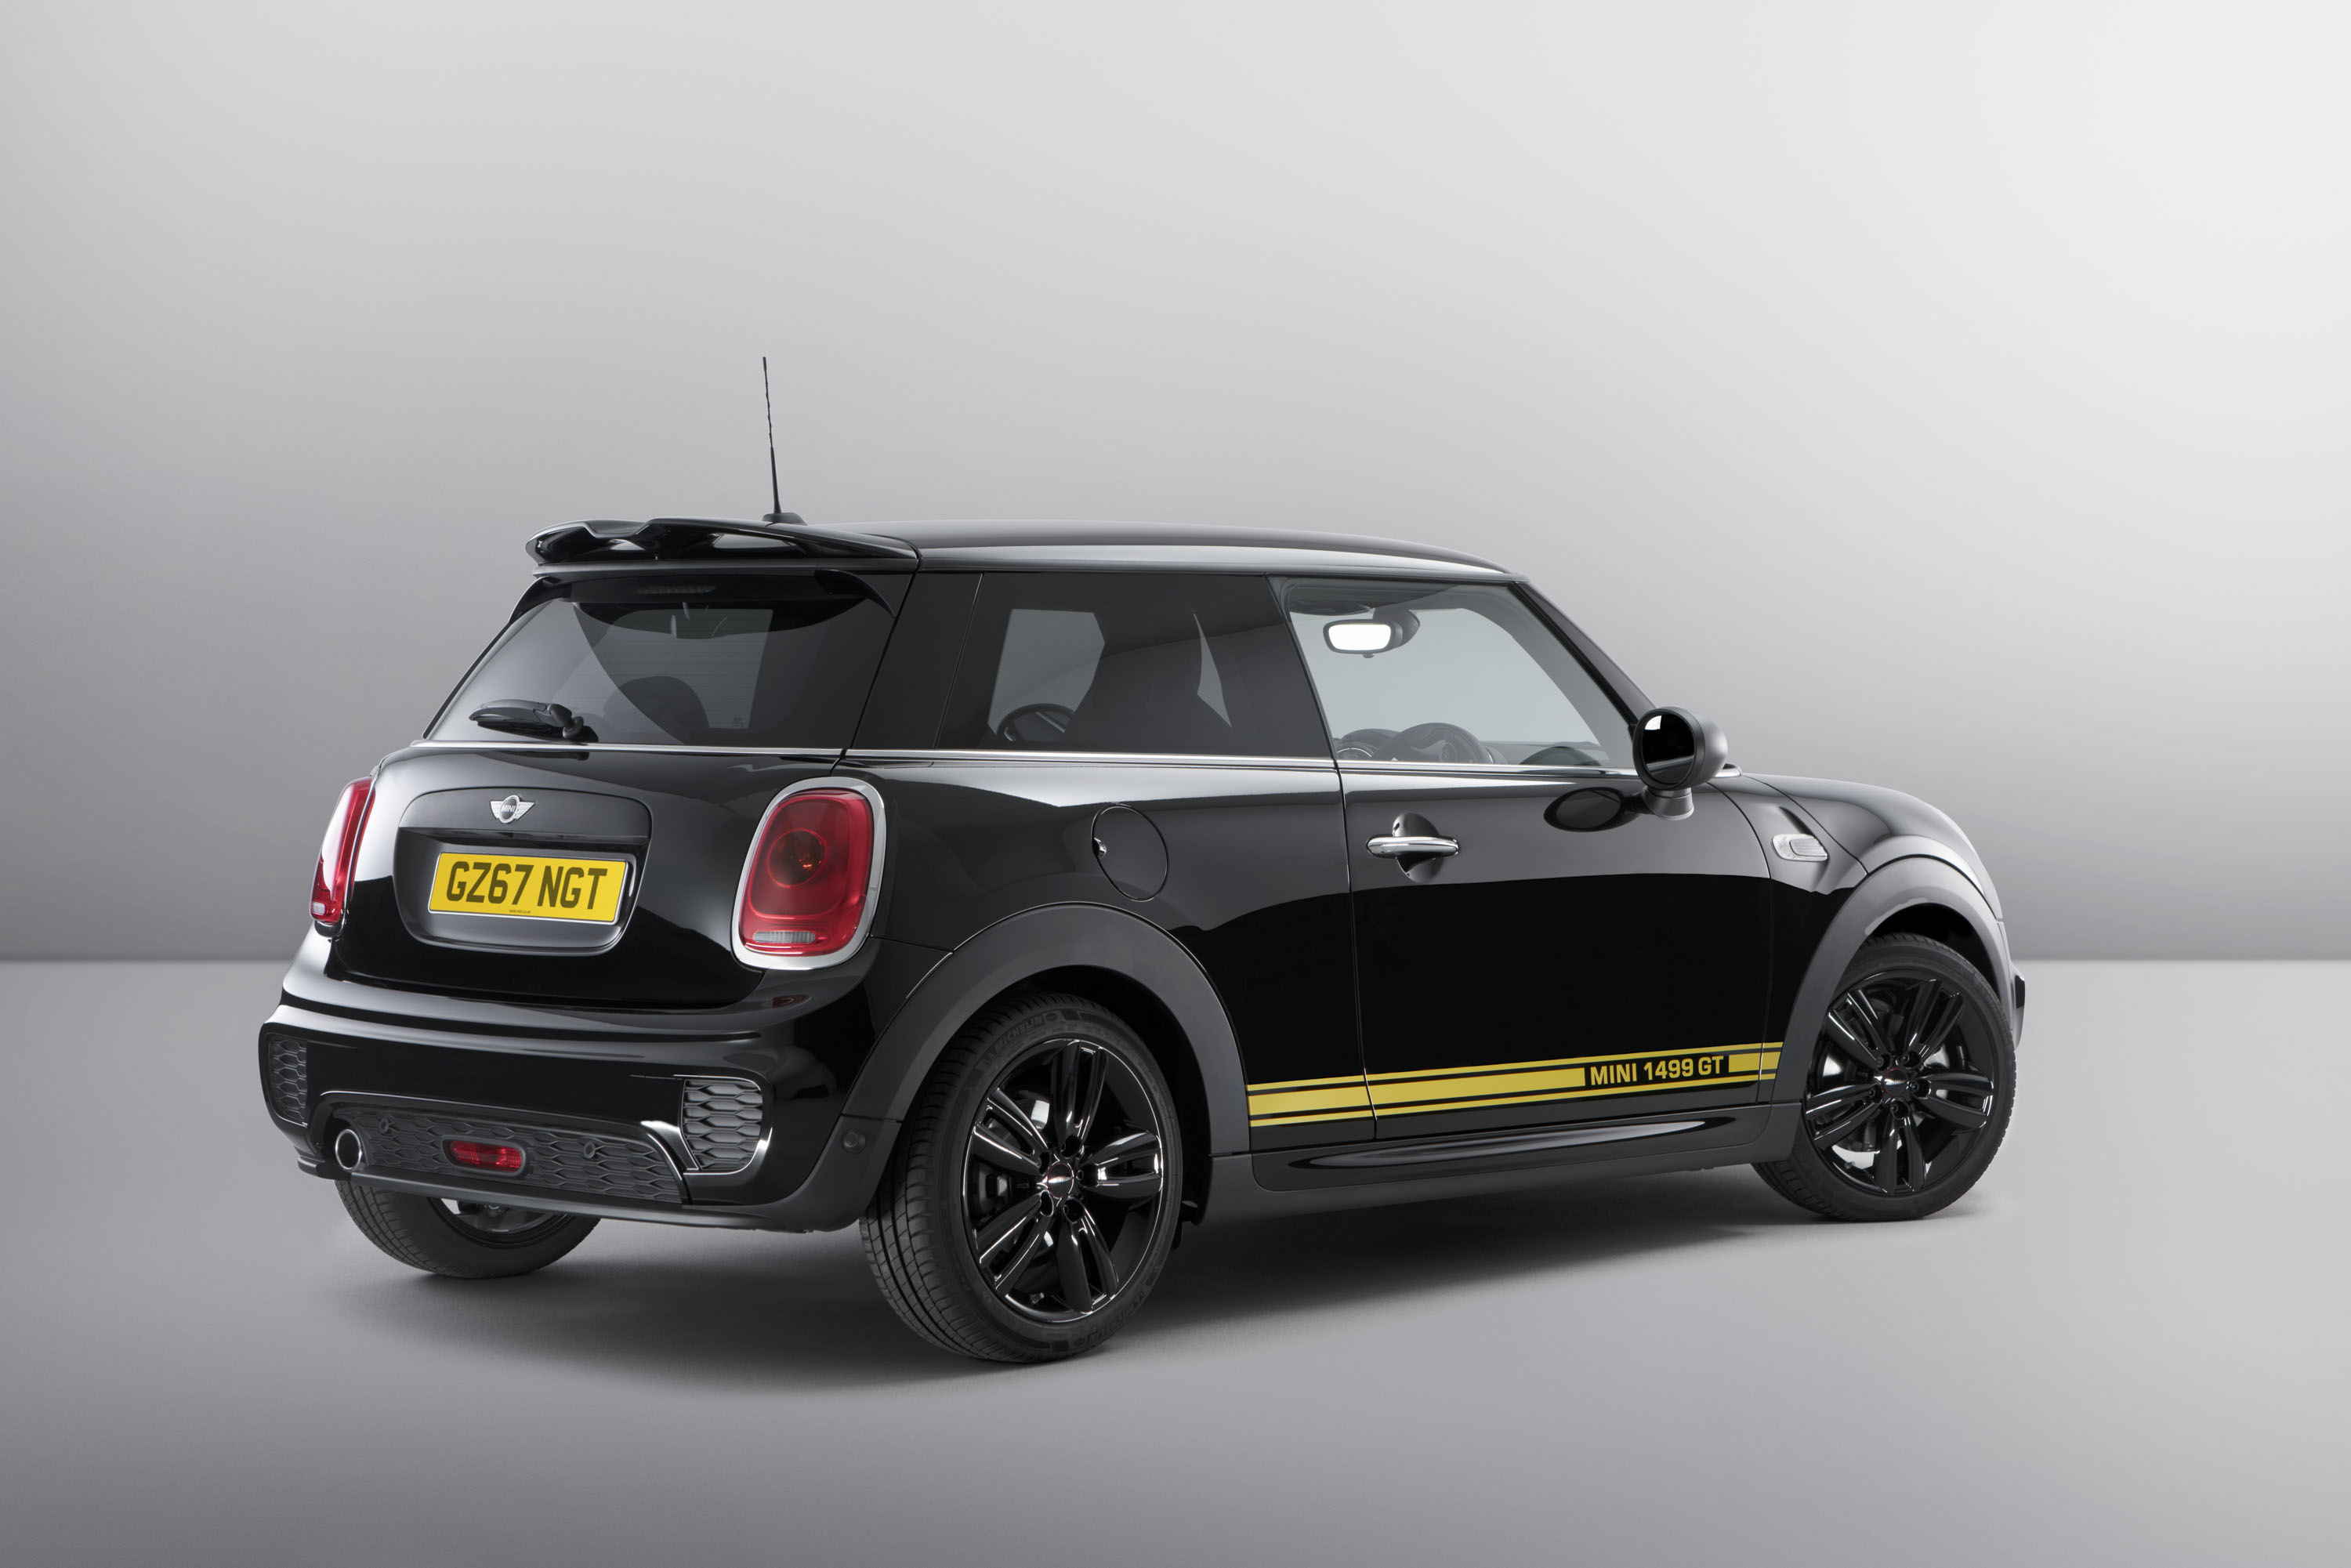 2017 Mini Cooper 1499 GT | Top Speed. »